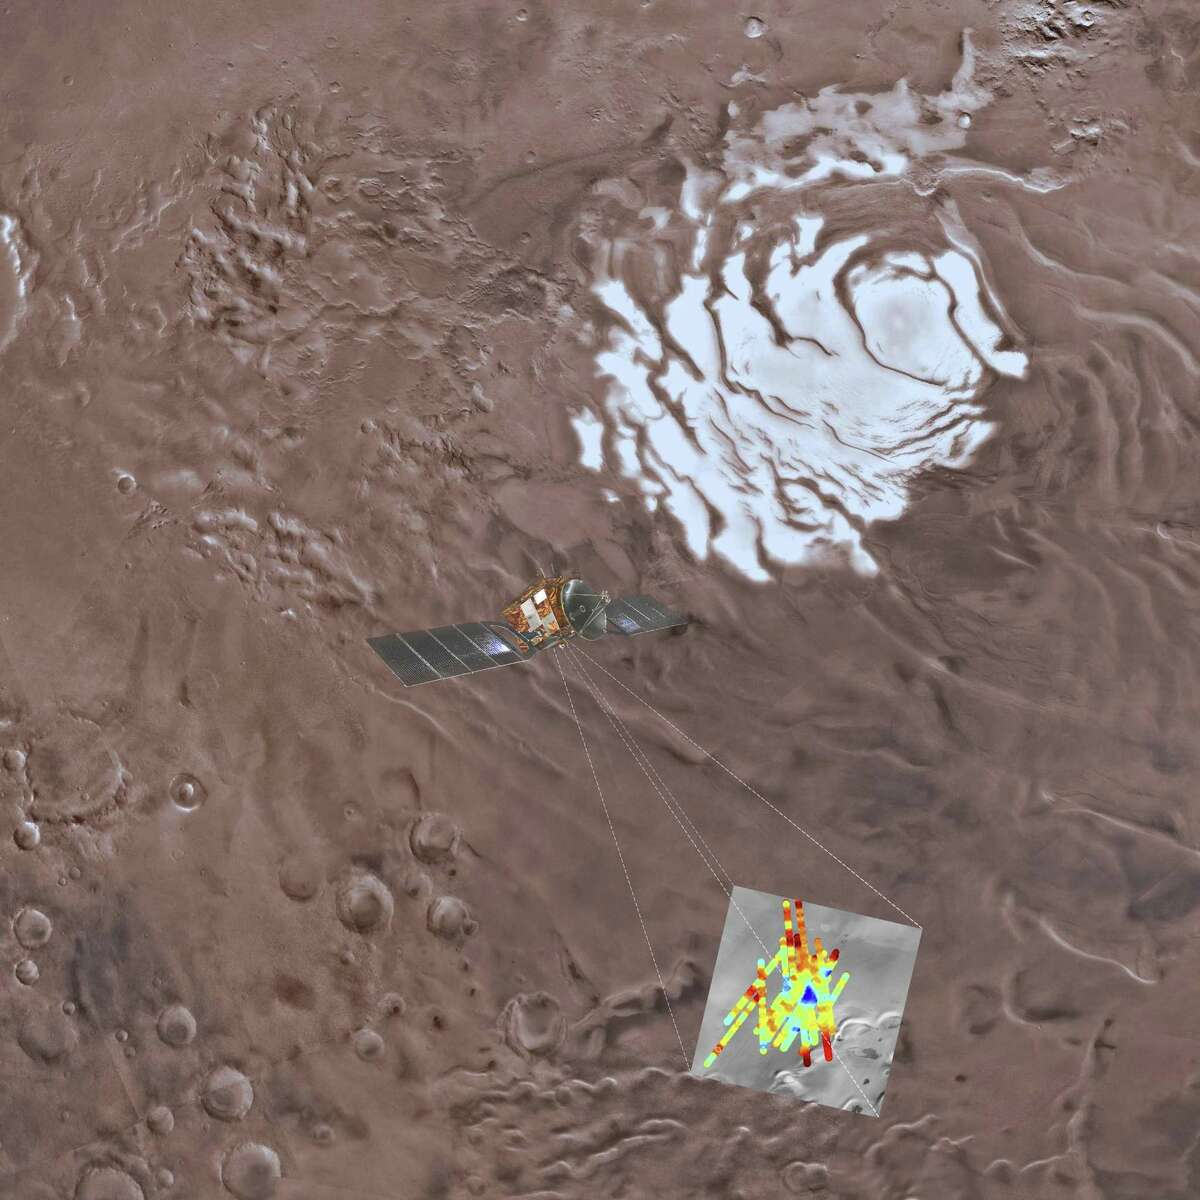 In a handout photo provided by the European Space Agency and the National Institute of Astrophysics, a view of the southern polar plain of Mars, with the Mars Express?'s color-coded findings superimposed at the site where they were detected. Italian scientists working on the European Space Agency?'s Mars Express mission announced that for the first time, a large body of liquid water had been detected by radar measurements beneath the ice cap near the Martian south pole.(Davide Coero Borga/ European Space Agency/ National Institute Of Astrophysics via The New York Times) -- NO SALES; FOR EDITORIAL USE ONLY WITH NYT STORY MARS LAKE BY KENNETH CHANG FOR JULY 25, 2018. ALL OTHER USE PROHIBITED. --